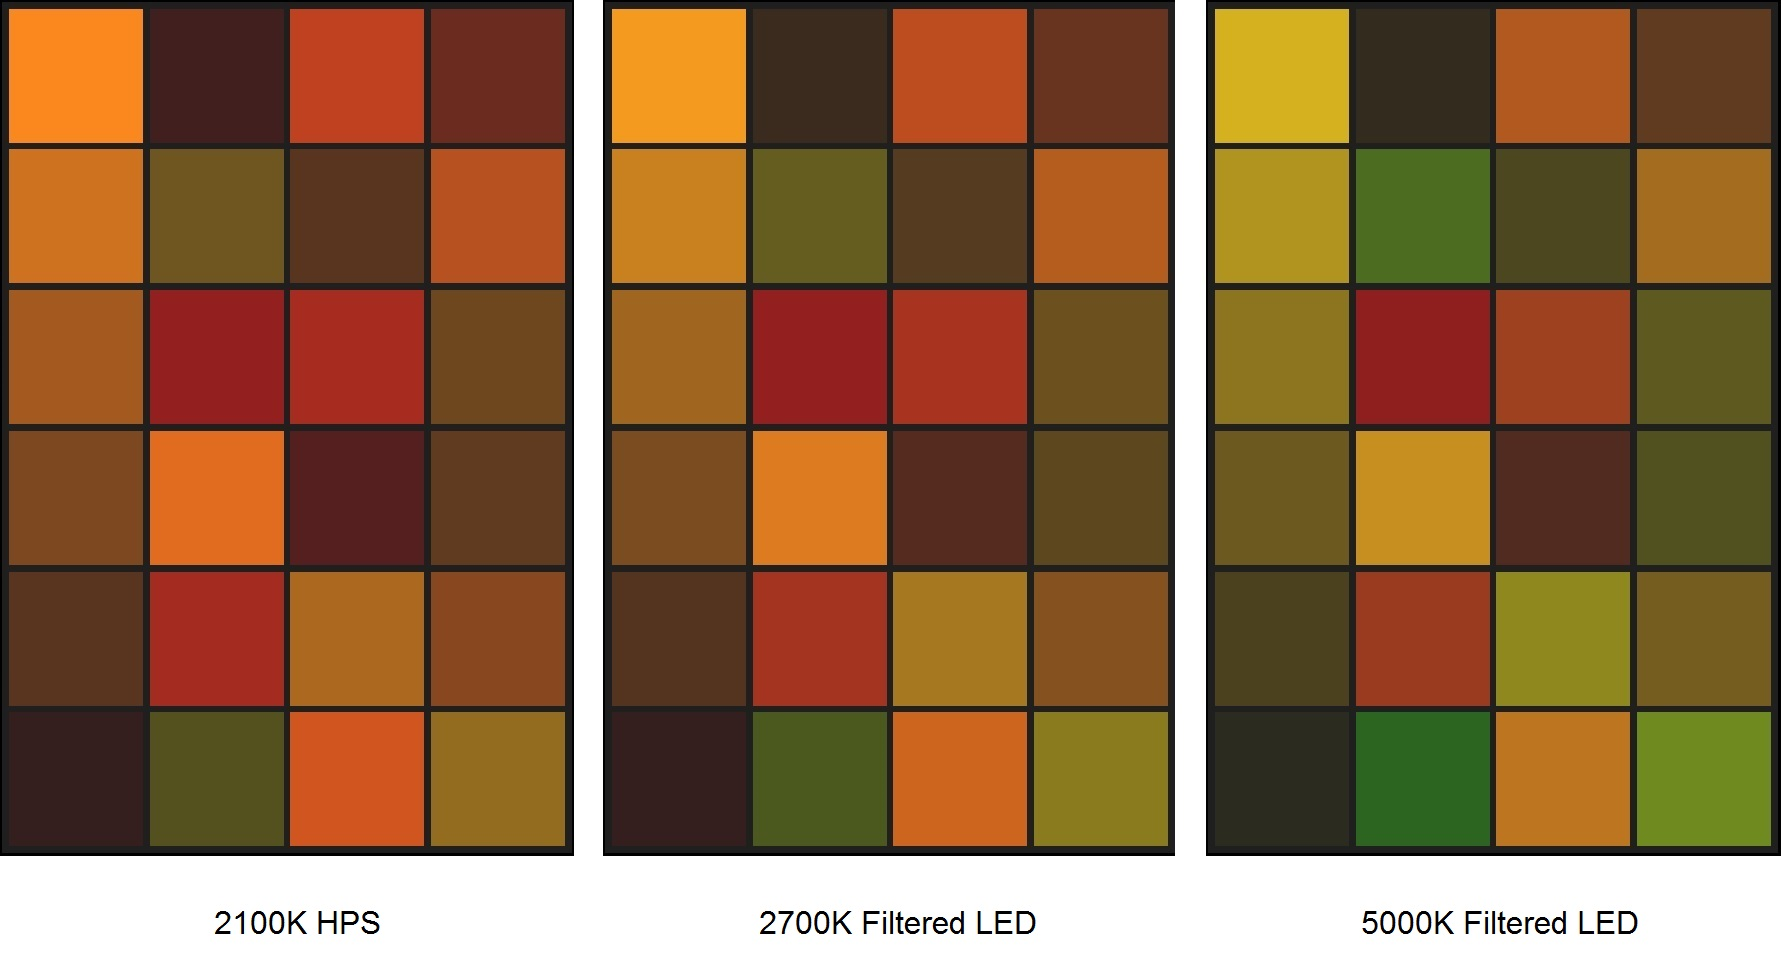 FIG. 7 – Filtered LED color shifts from 2100K daylight.